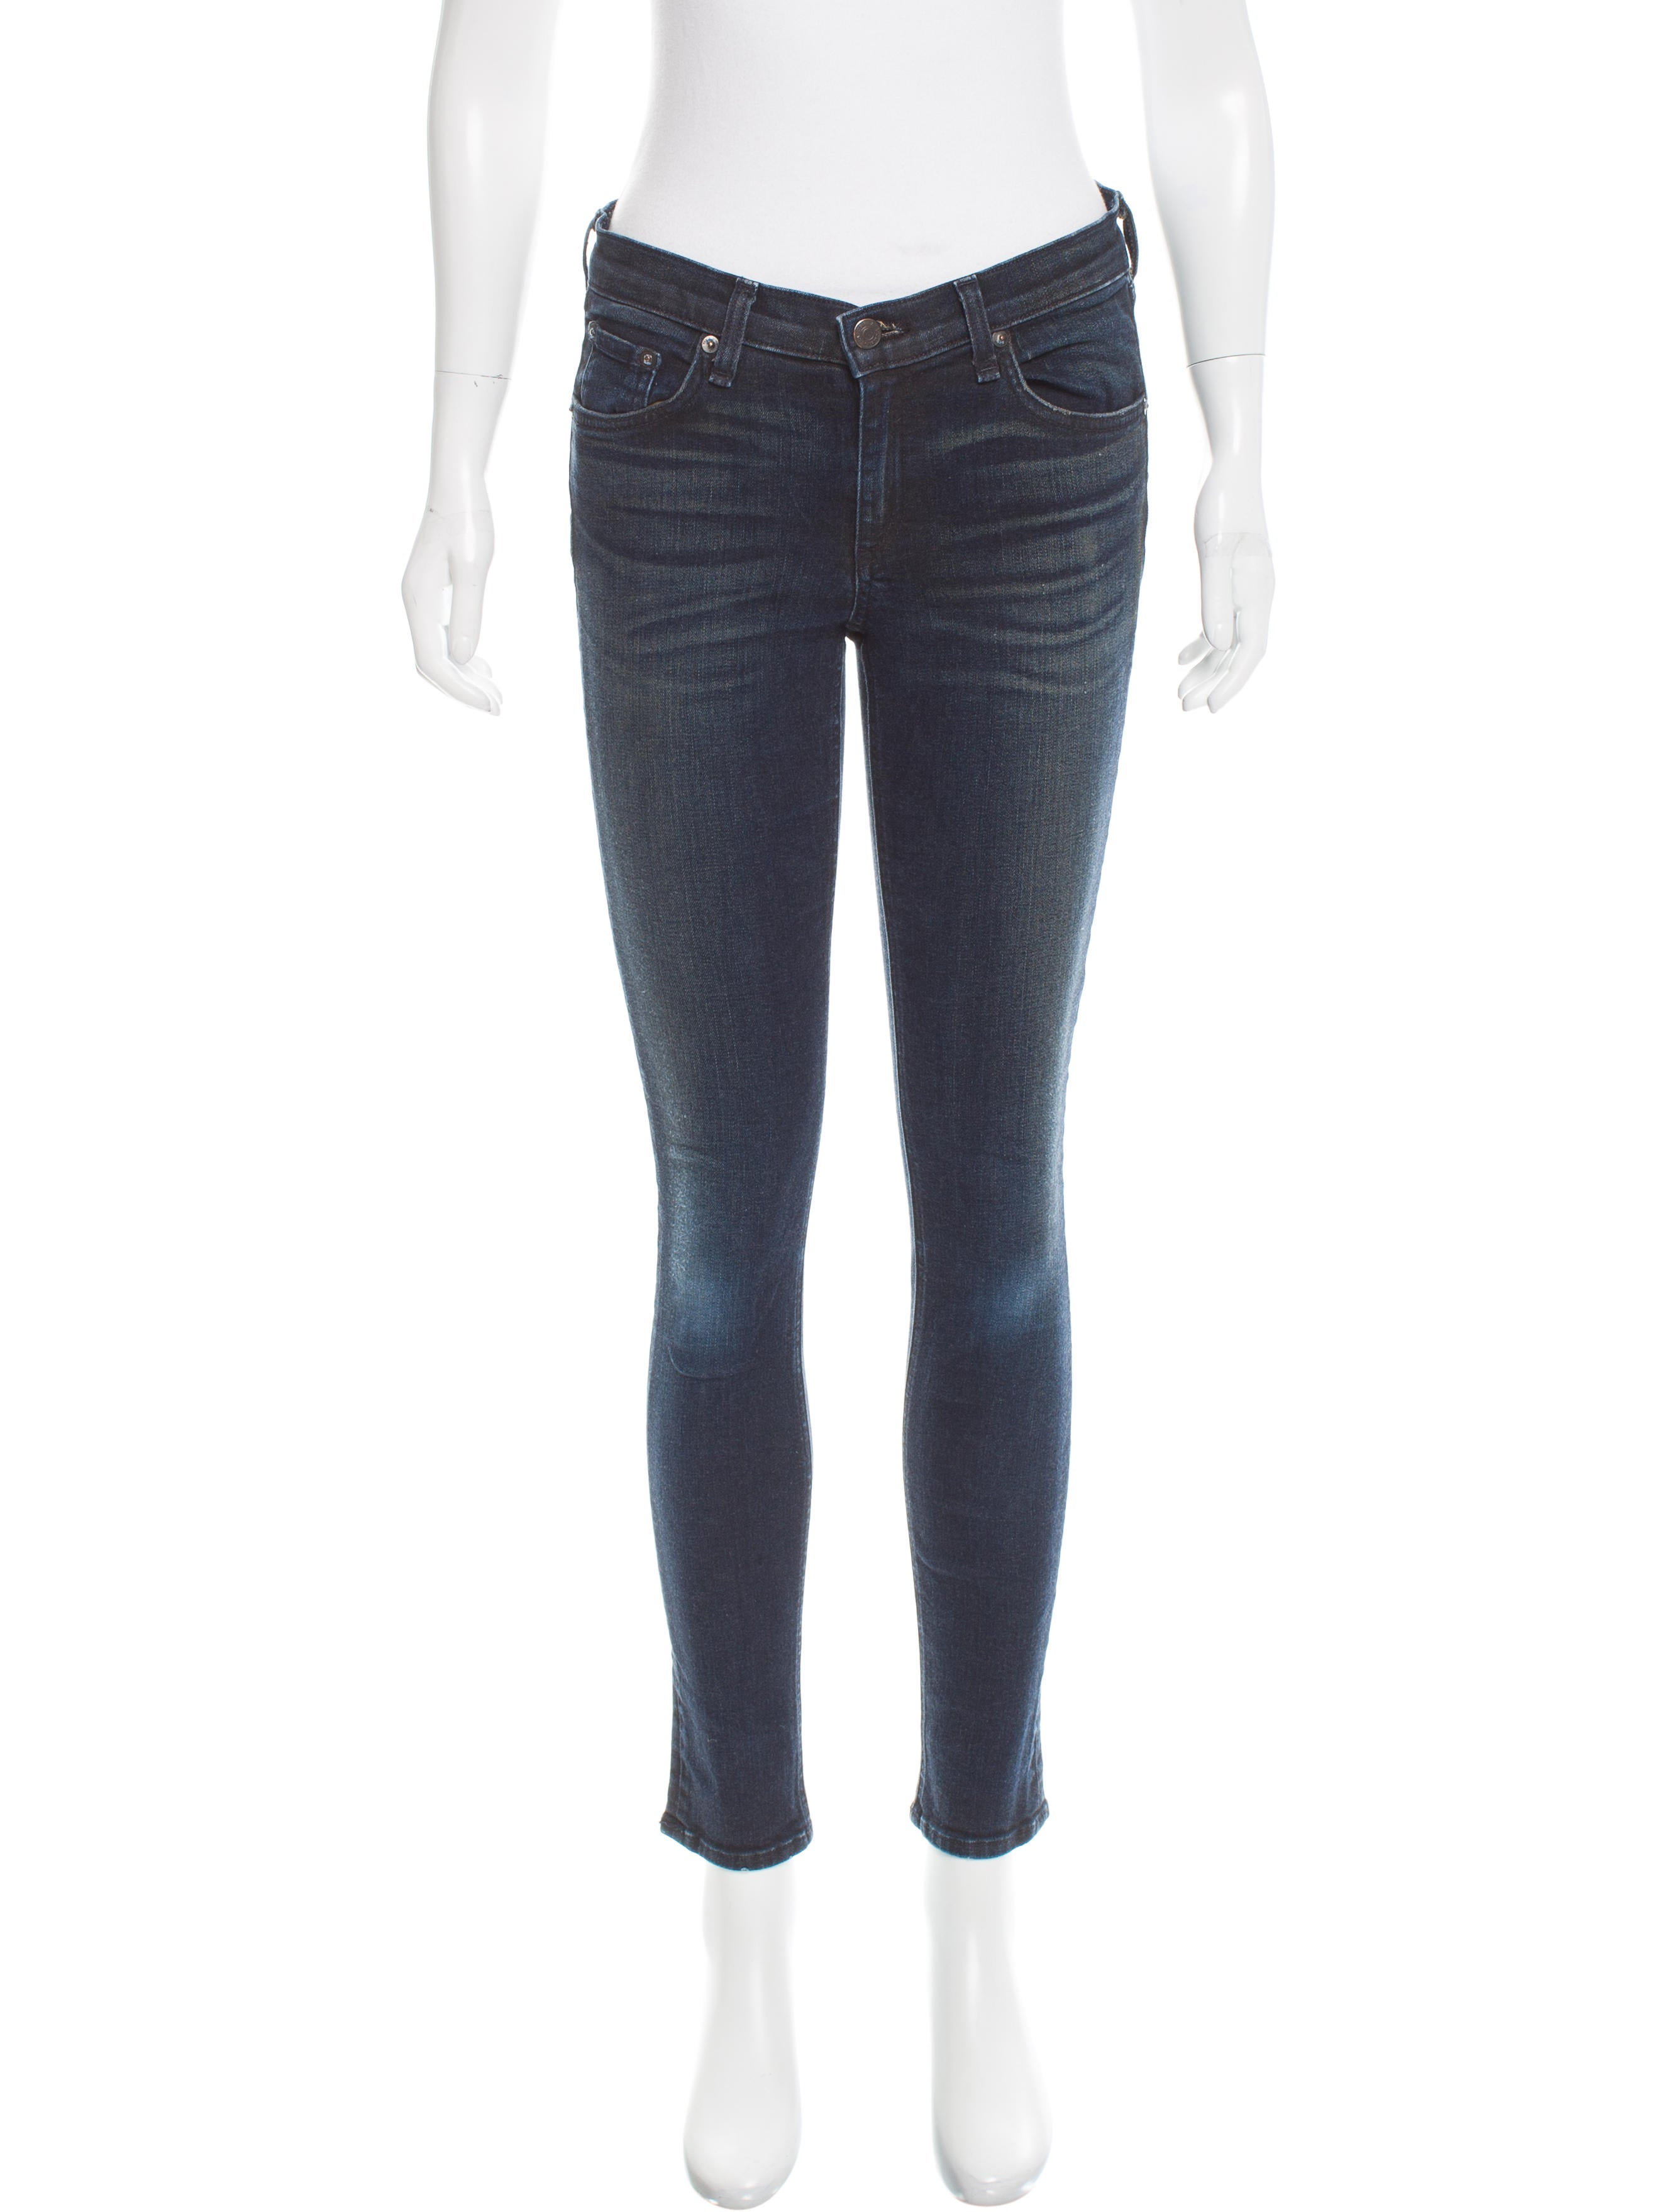 SHOPBOP - Skinny Jeans FASTEST FREE SHIPPING WORLDWIDE on Skinny Jeans & FREE EASY RETURNS. hidden honeypot link Relaxed Skinny Skinny Jeans Straight Leg Jeans Black Jeans Dark Rinse Jeans Light Wash Jeans White Jeans.